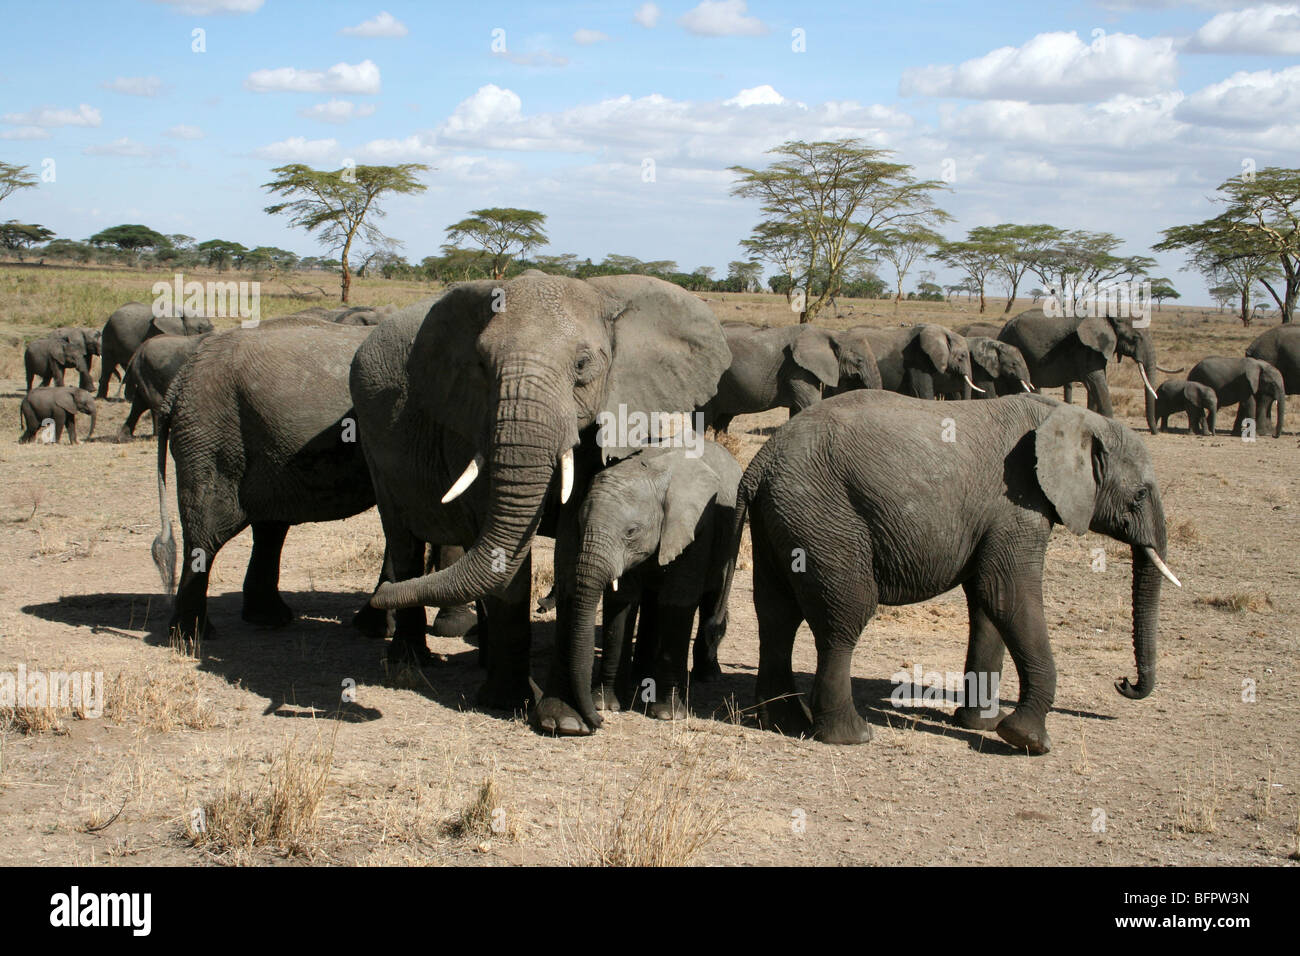 Family Group Of African Elephants Loxodonta africana Taken In The Serengeti NP, Tanzania - Stock Image